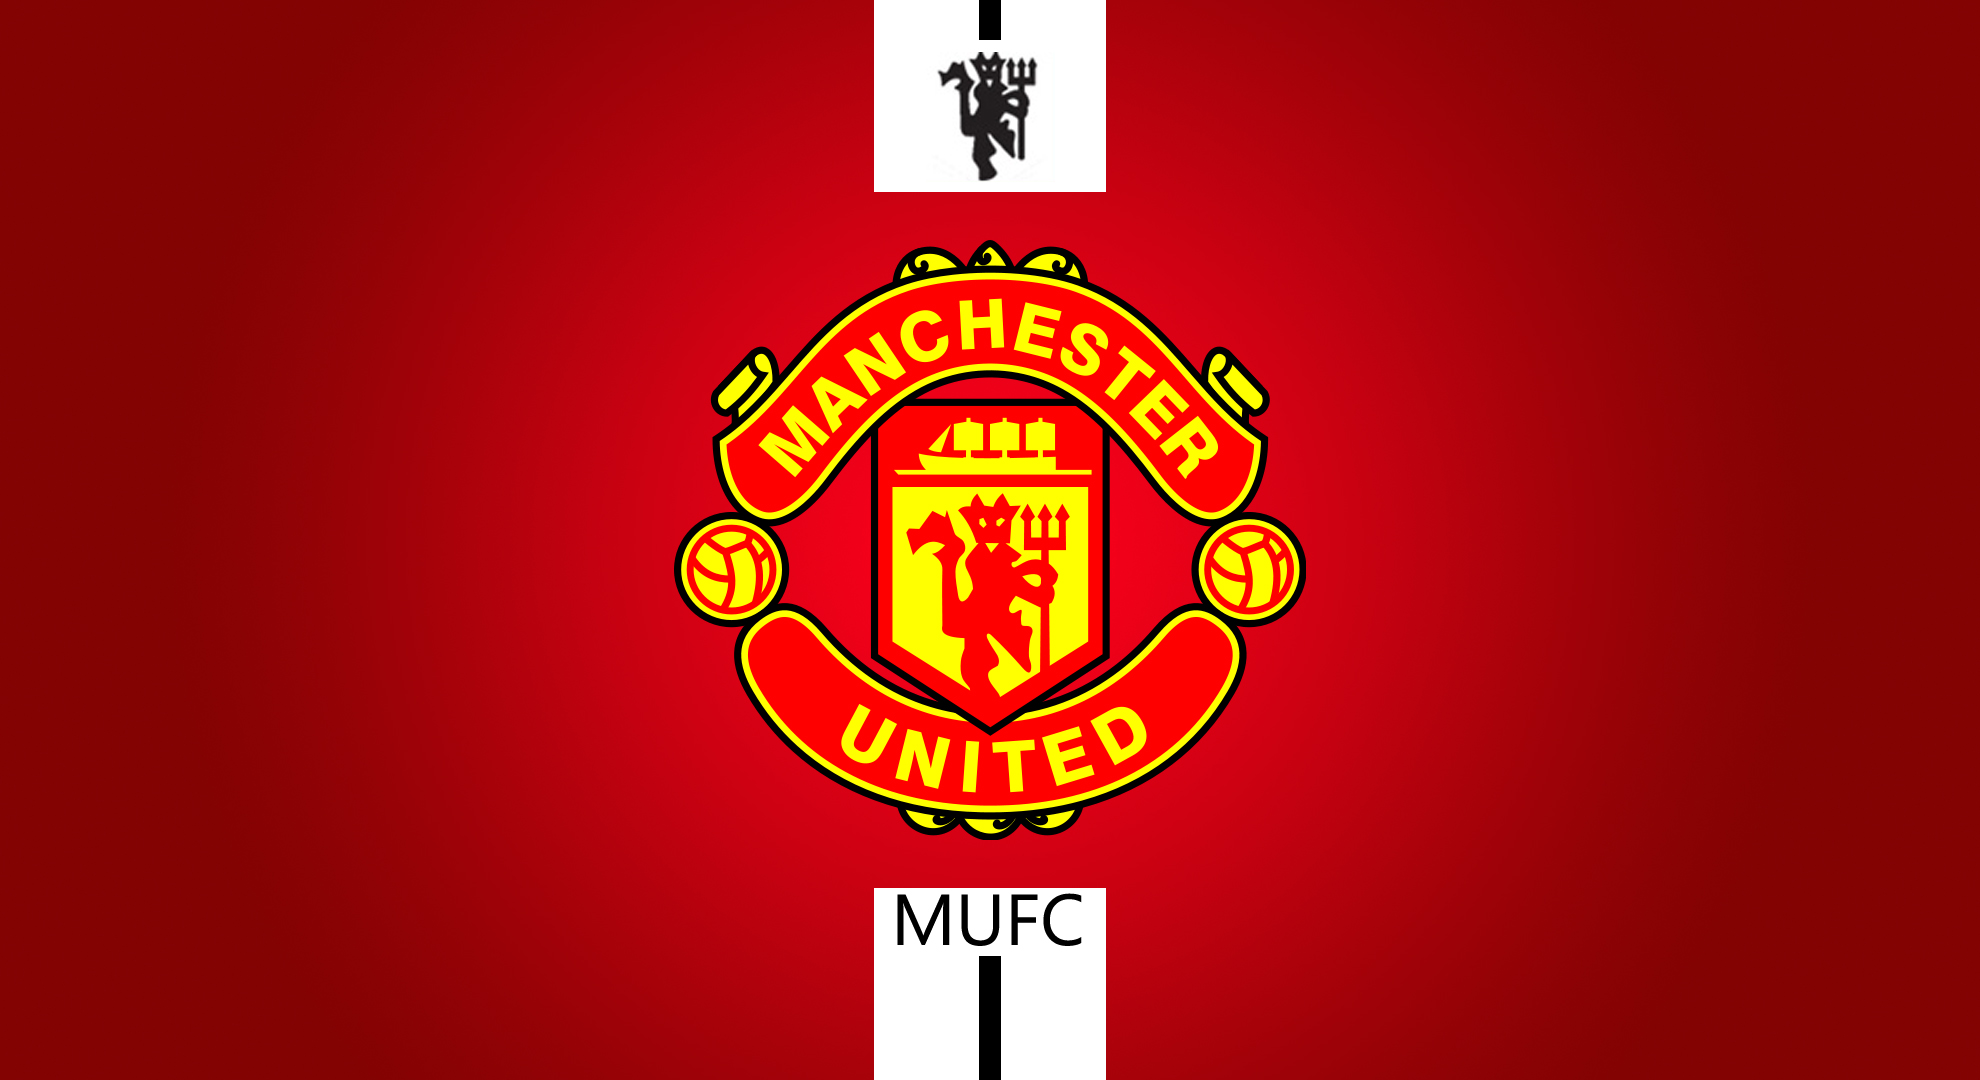 Manchester united football wallpaper backgrounds and picture manchester united wallpaper voltagebd Choice Image